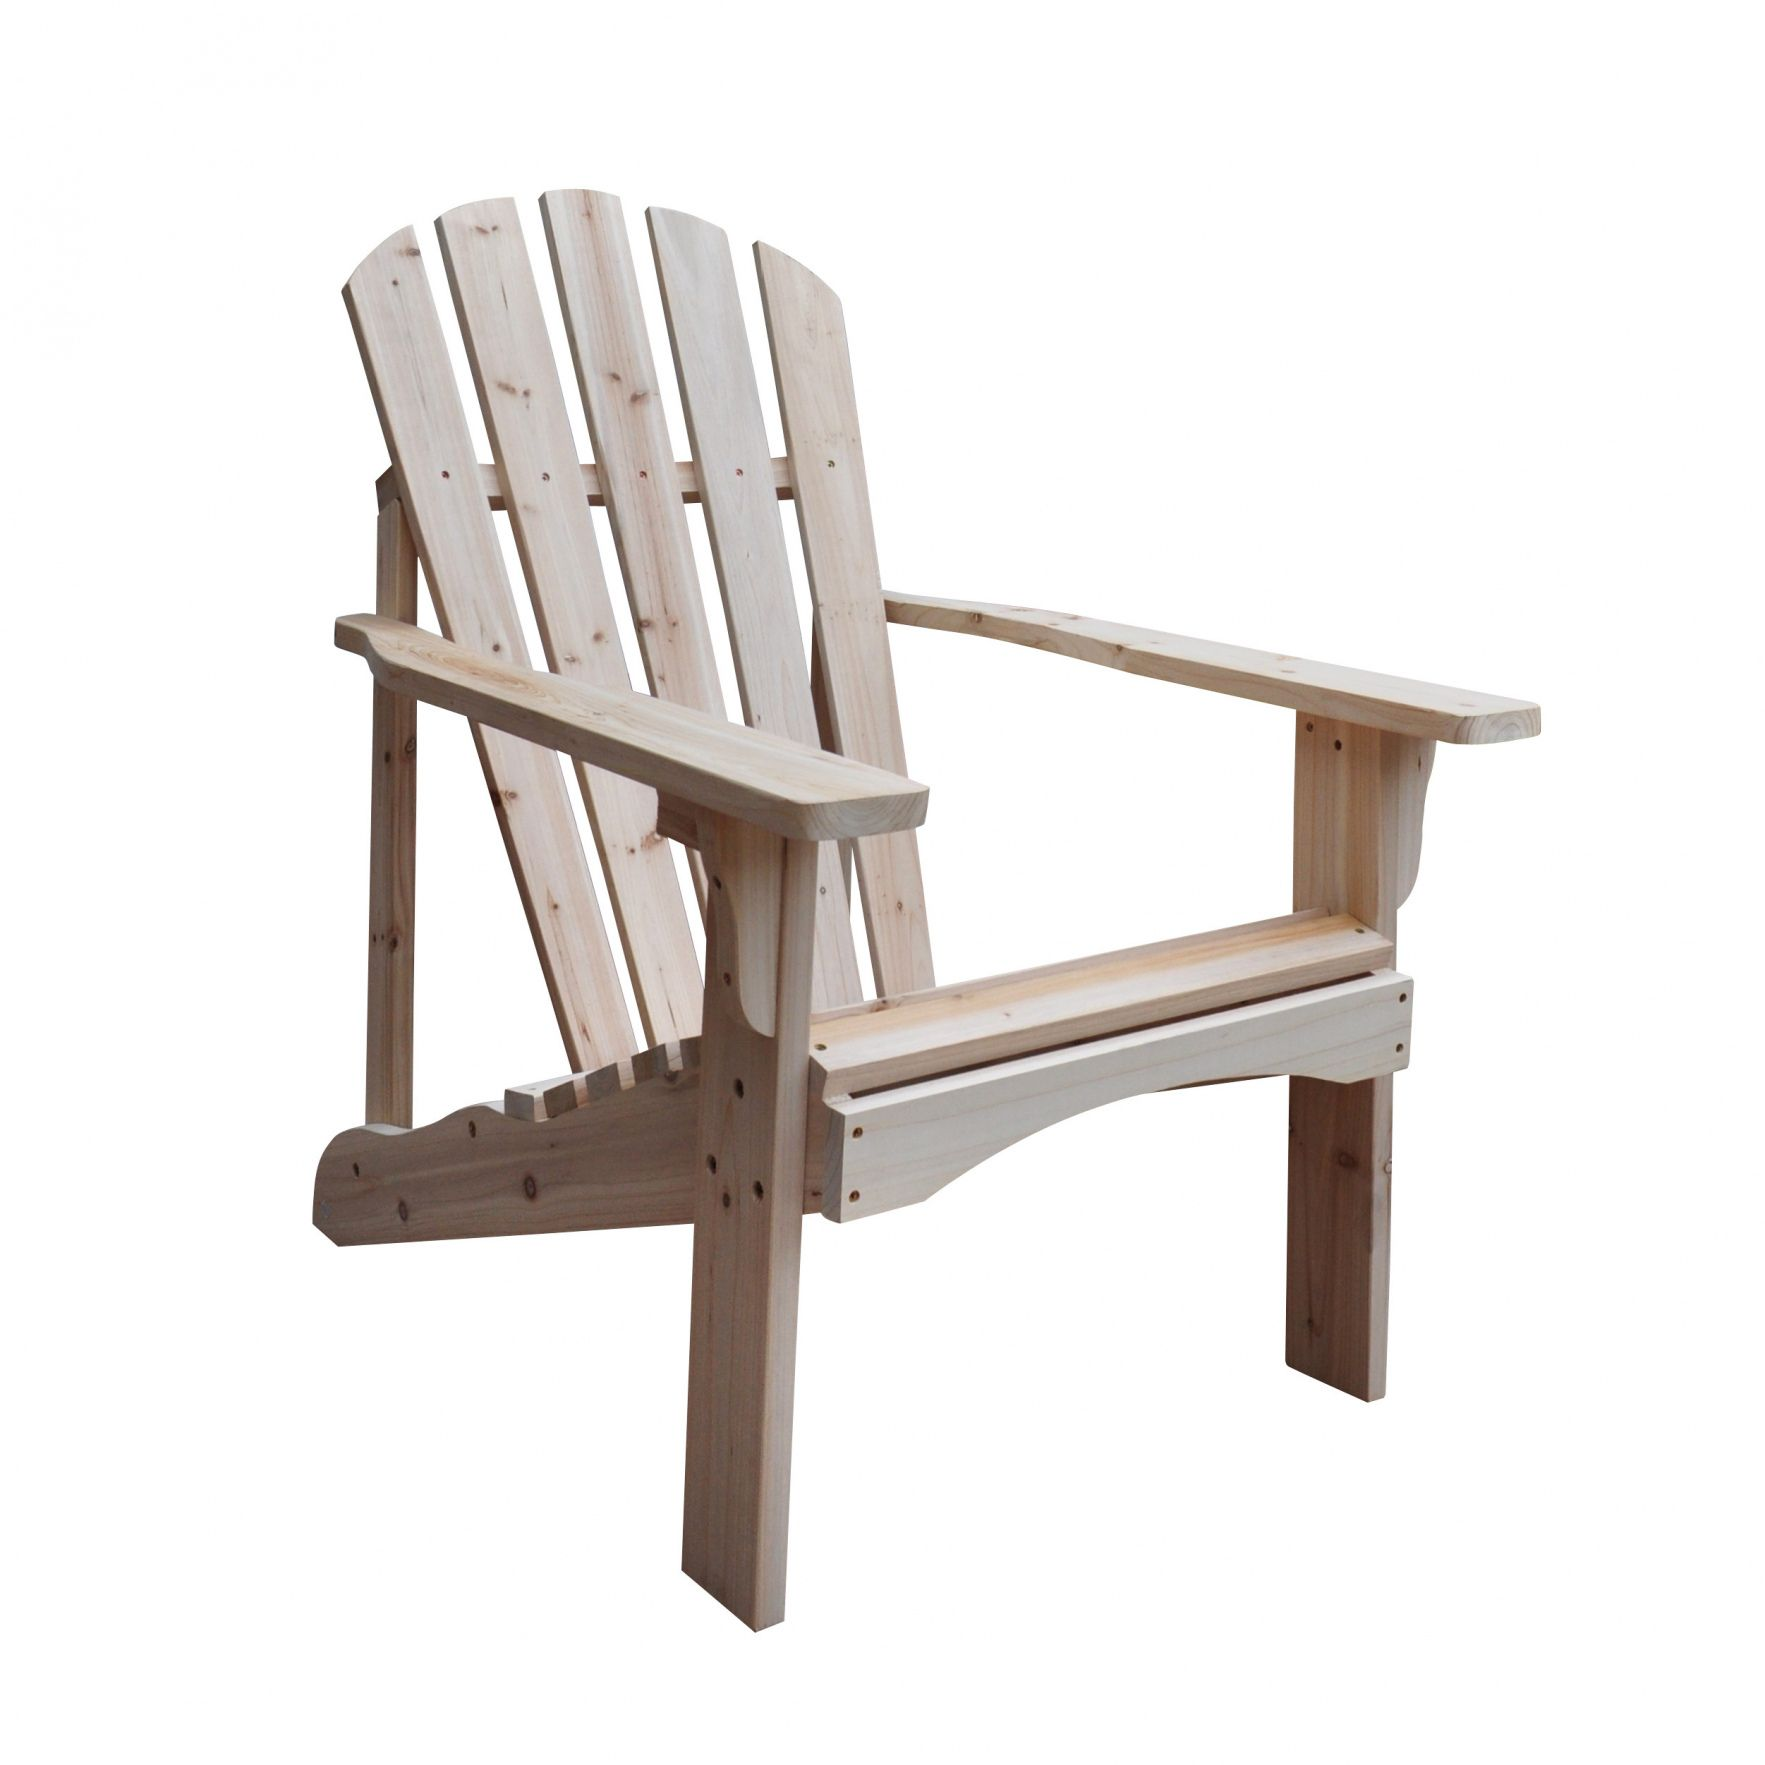 Wayfair Adirondack Chairs White Chair Covers Near Me 2019 Cool Furniture Ideas Check More At Http Steelbookreview